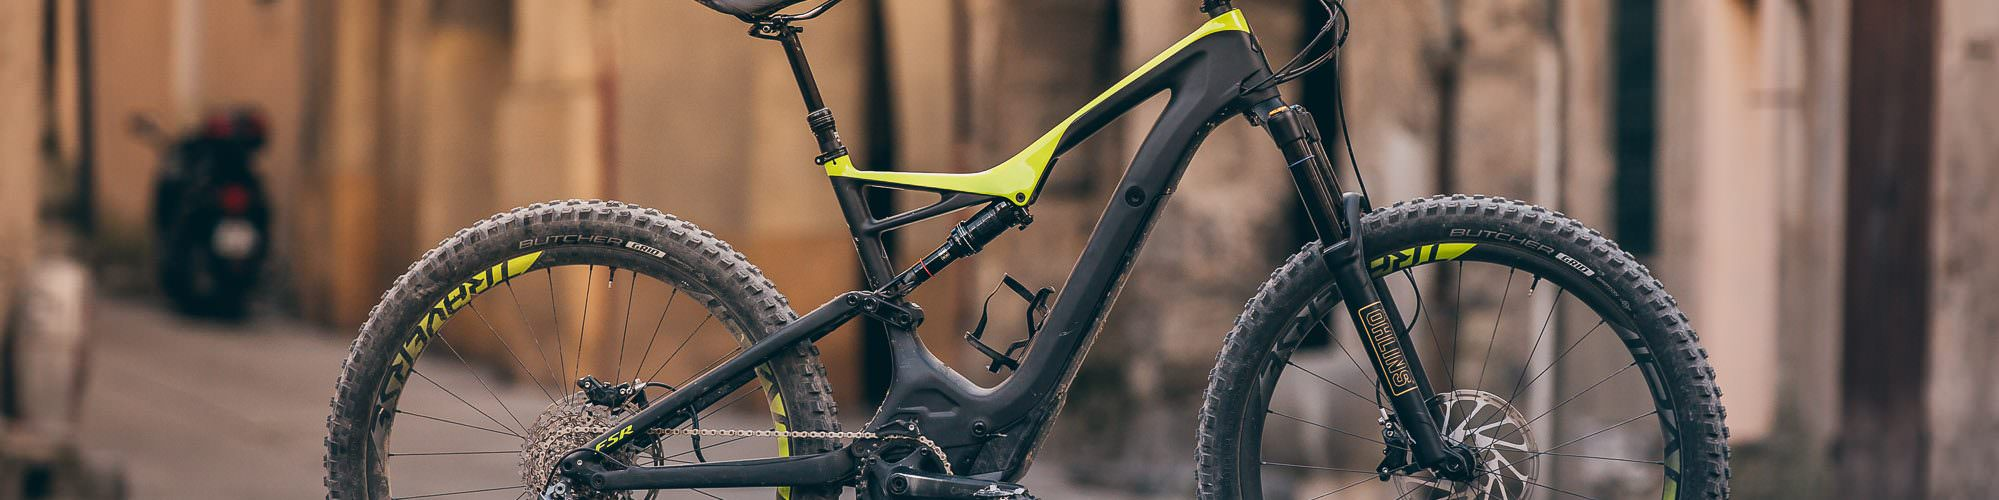 Specialized Turbo Levo S-Works Carbon Review   E